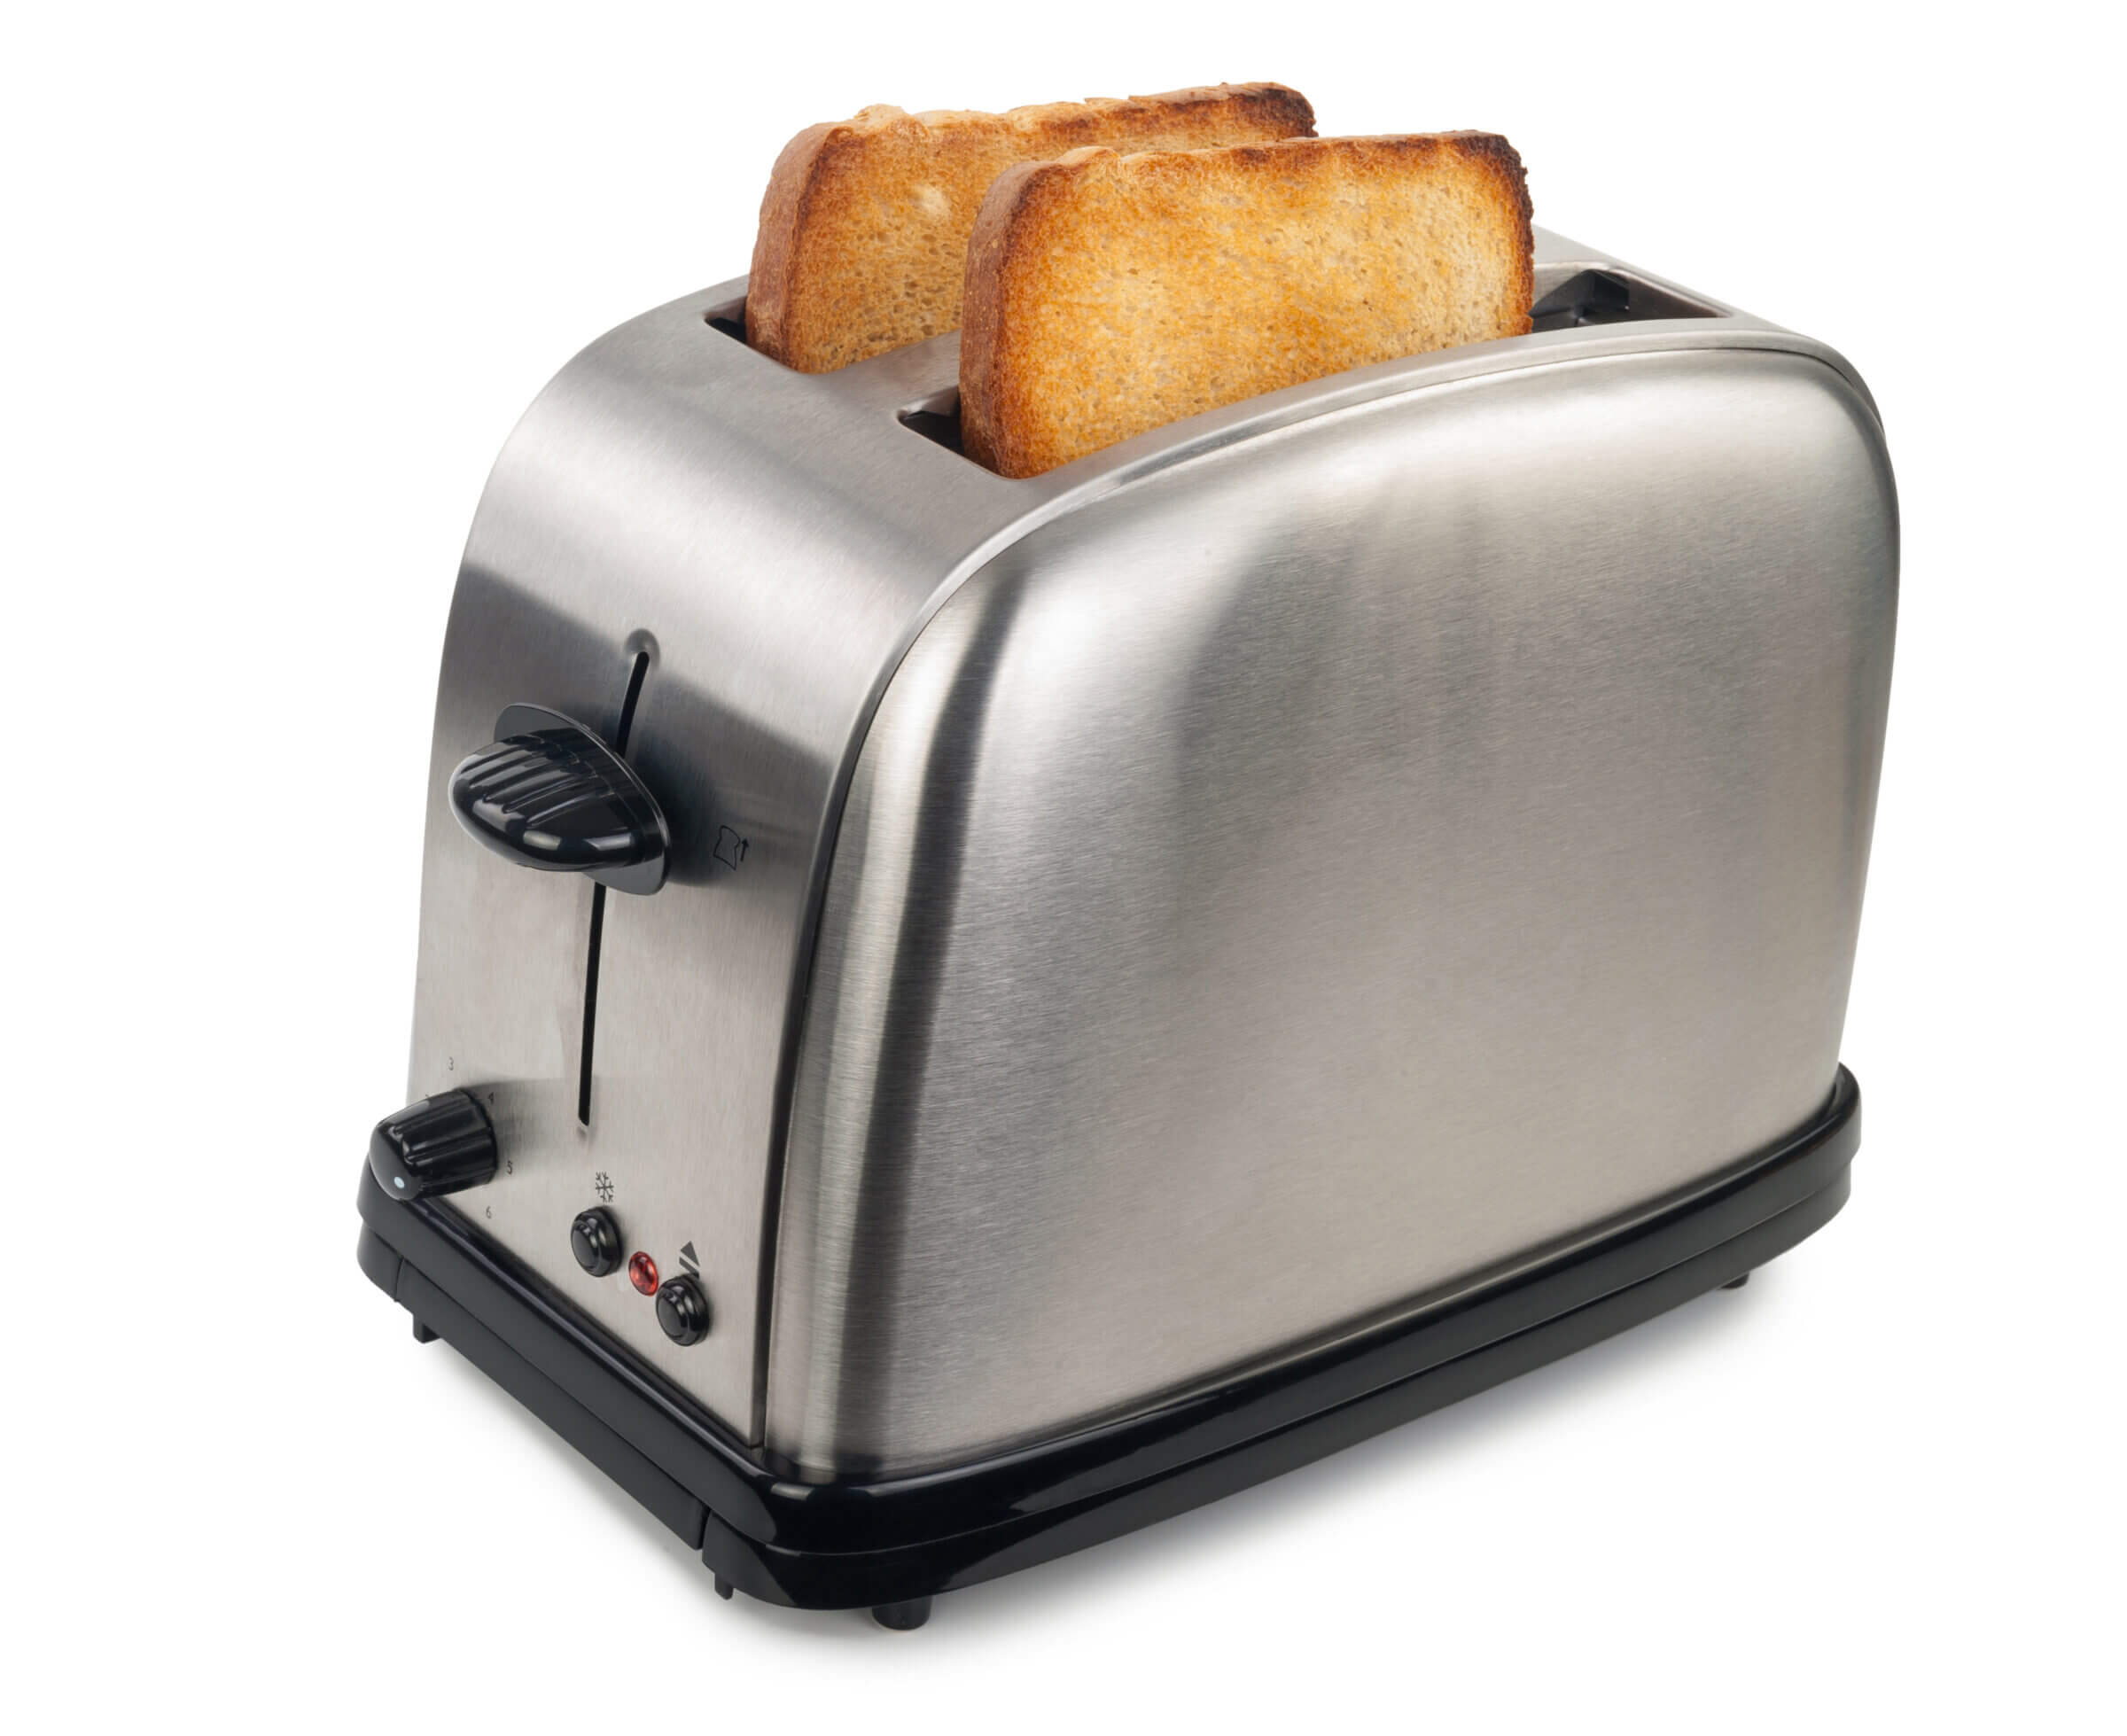 Toaster with toast popping up